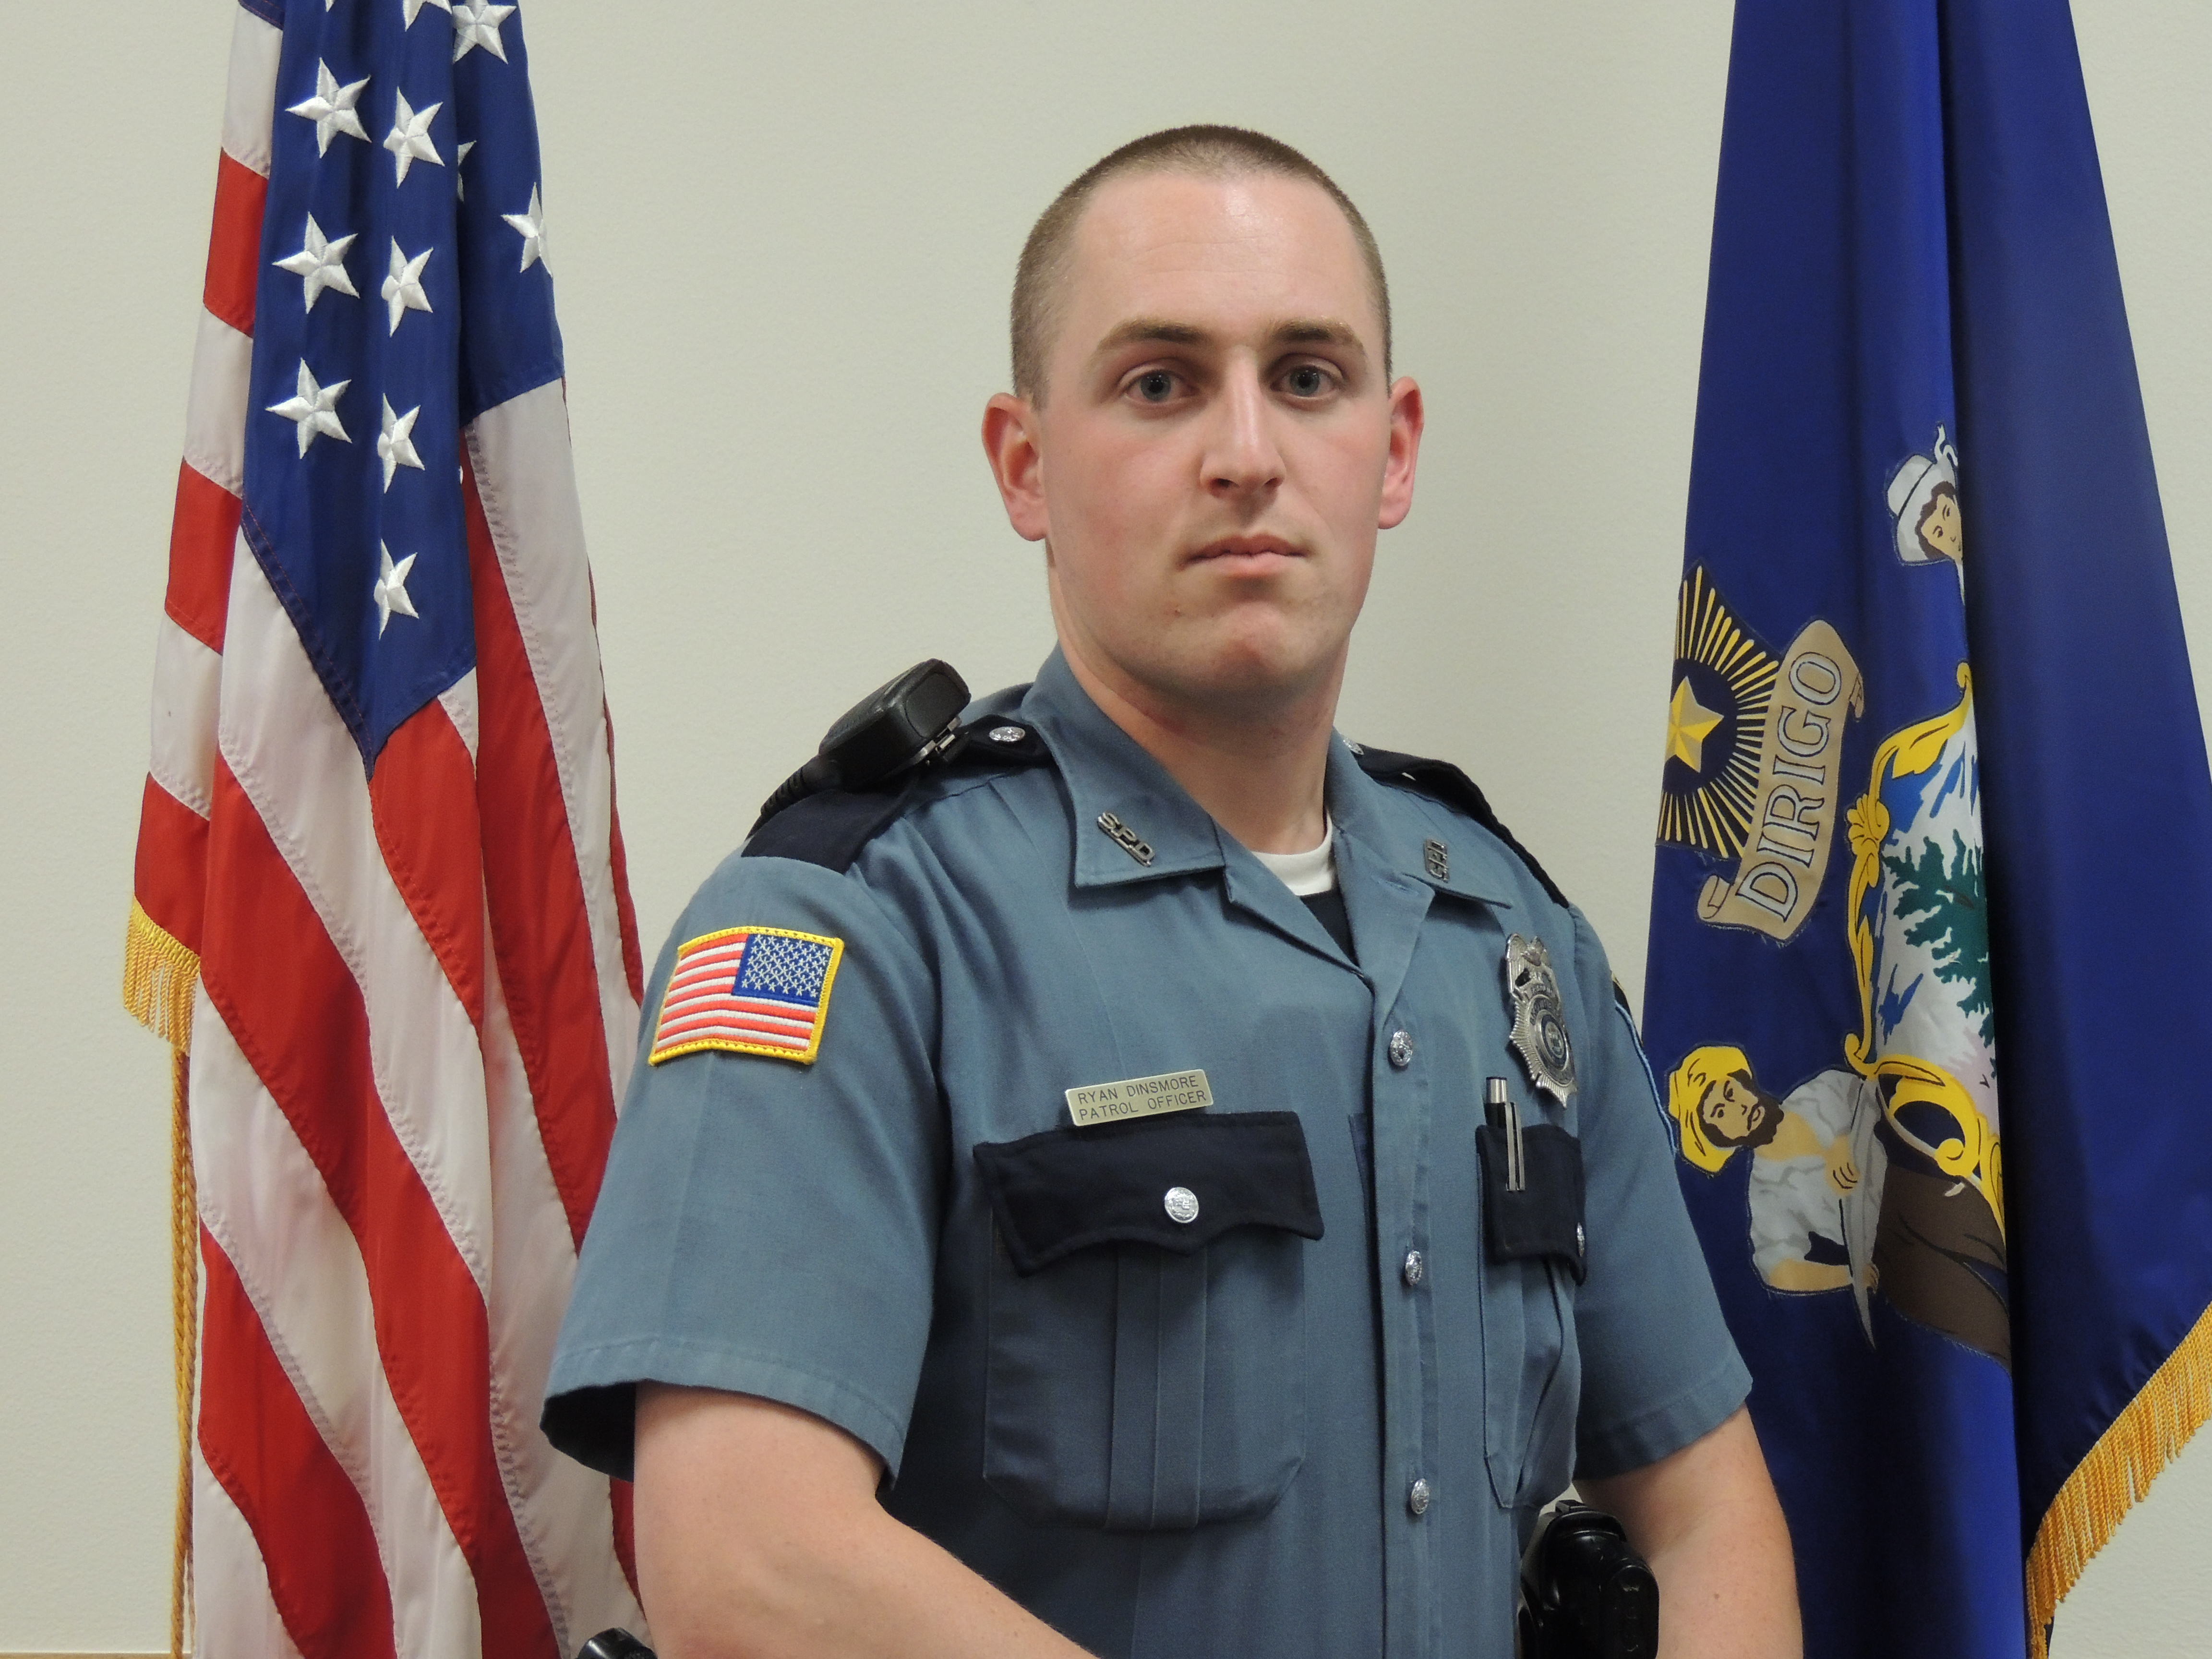 Patrol Officer Ryan Dinsmore